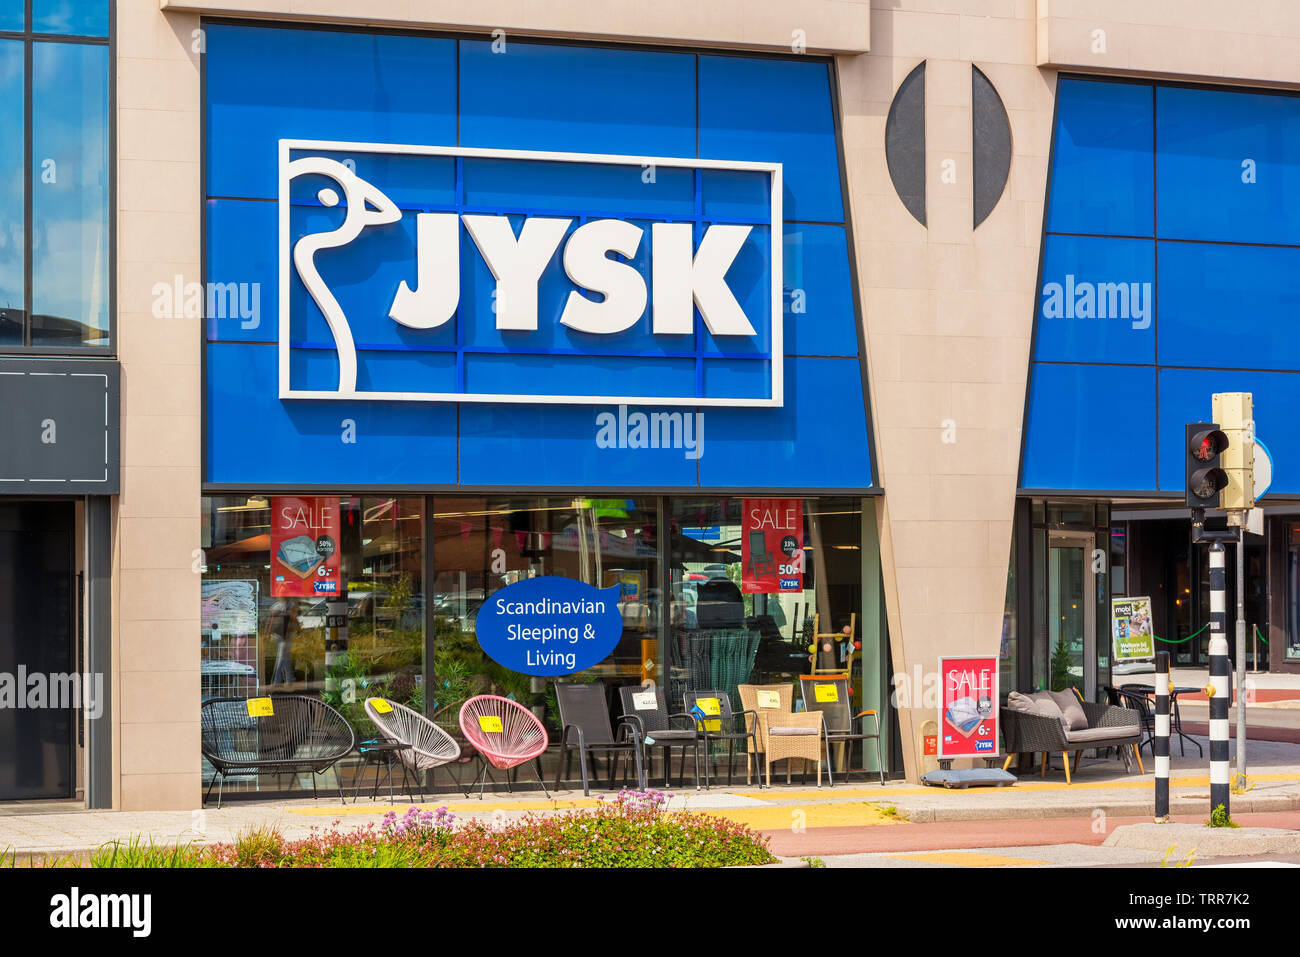 Jysk store in Alkmaar, Netherlands. Jysk is a Danish Home Furnishings retail chain, active in 50 countries. - Stock Image